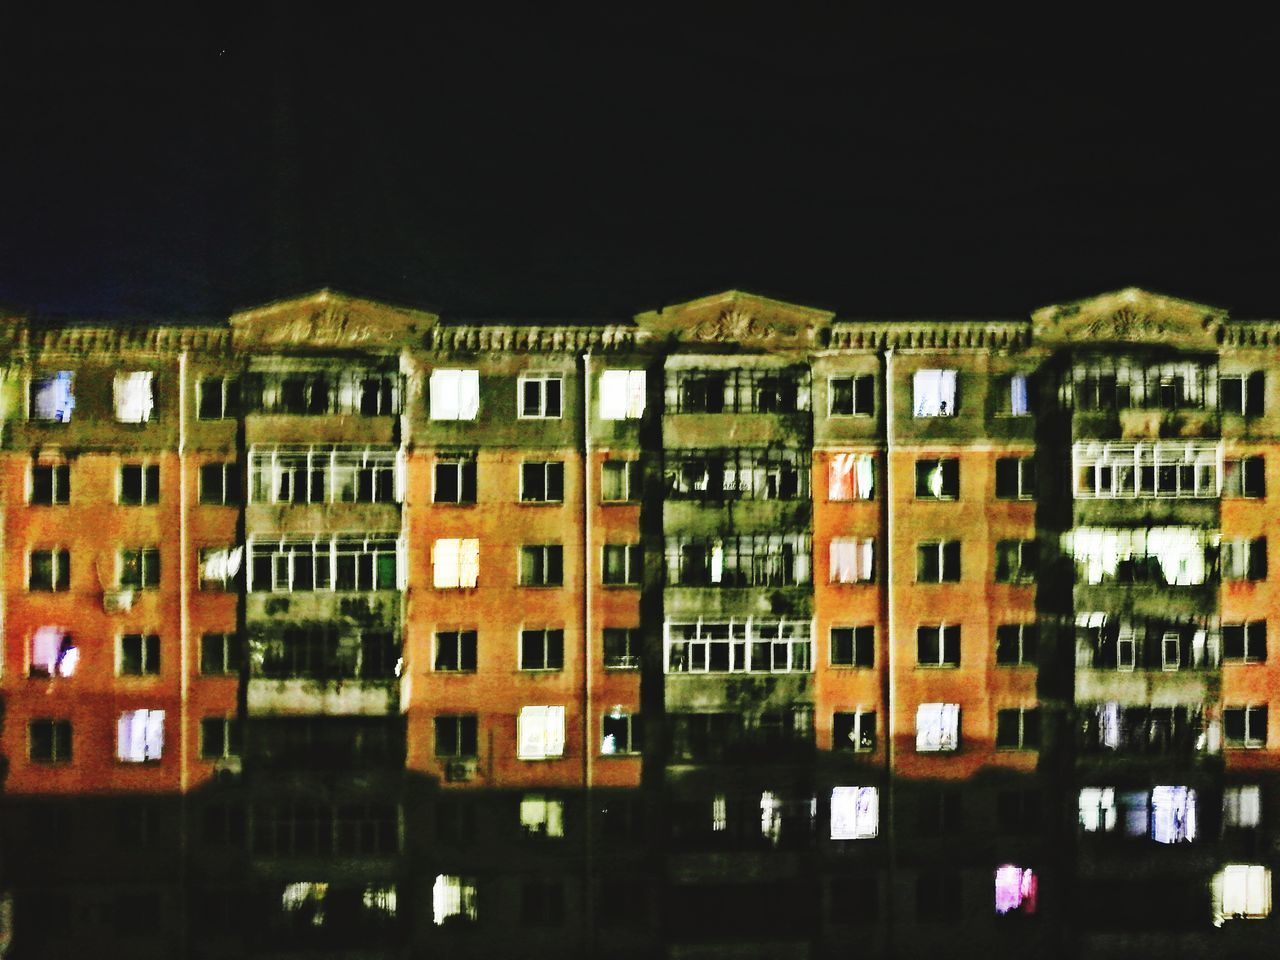 night, architecture, building exterior, no people, built structure, illuminated, window, residential building, outdoors, city, sky, close-up